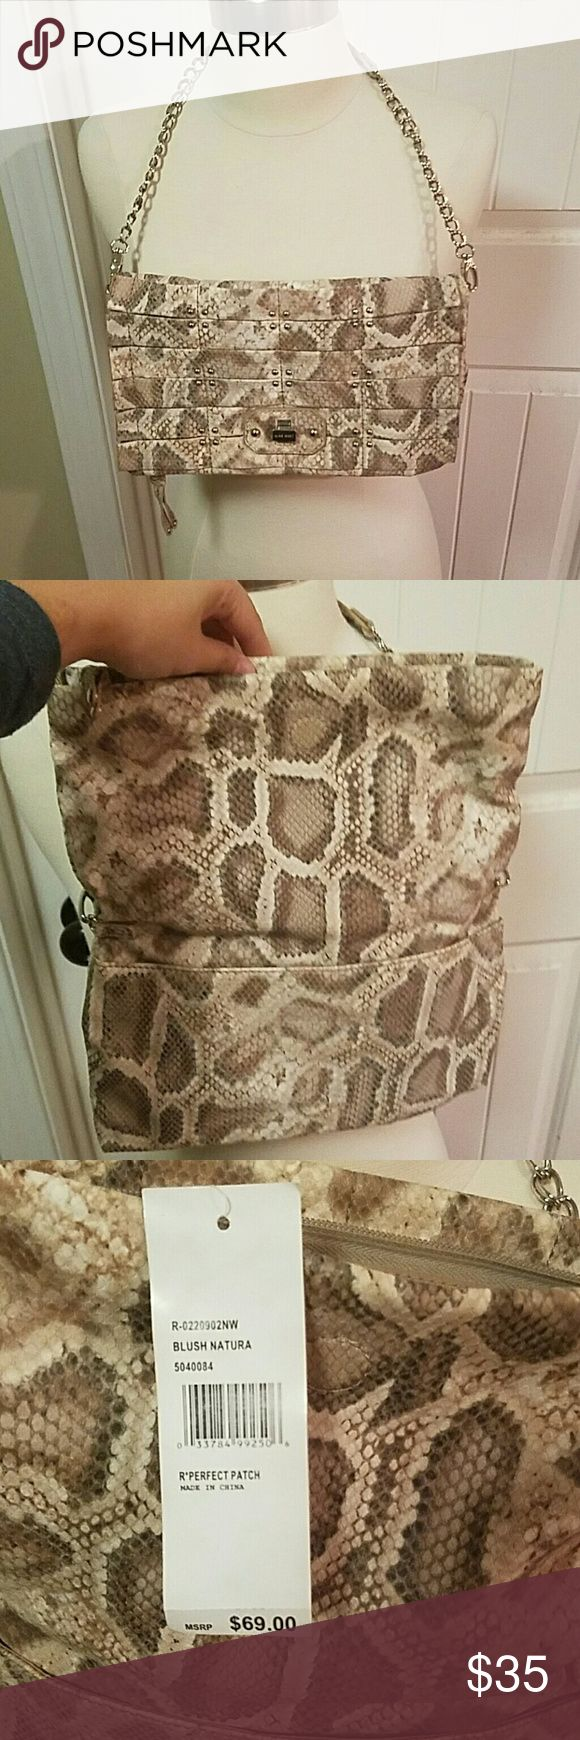 Nine West purse - brand.new with tag Snake skin pattern Nine West Bags